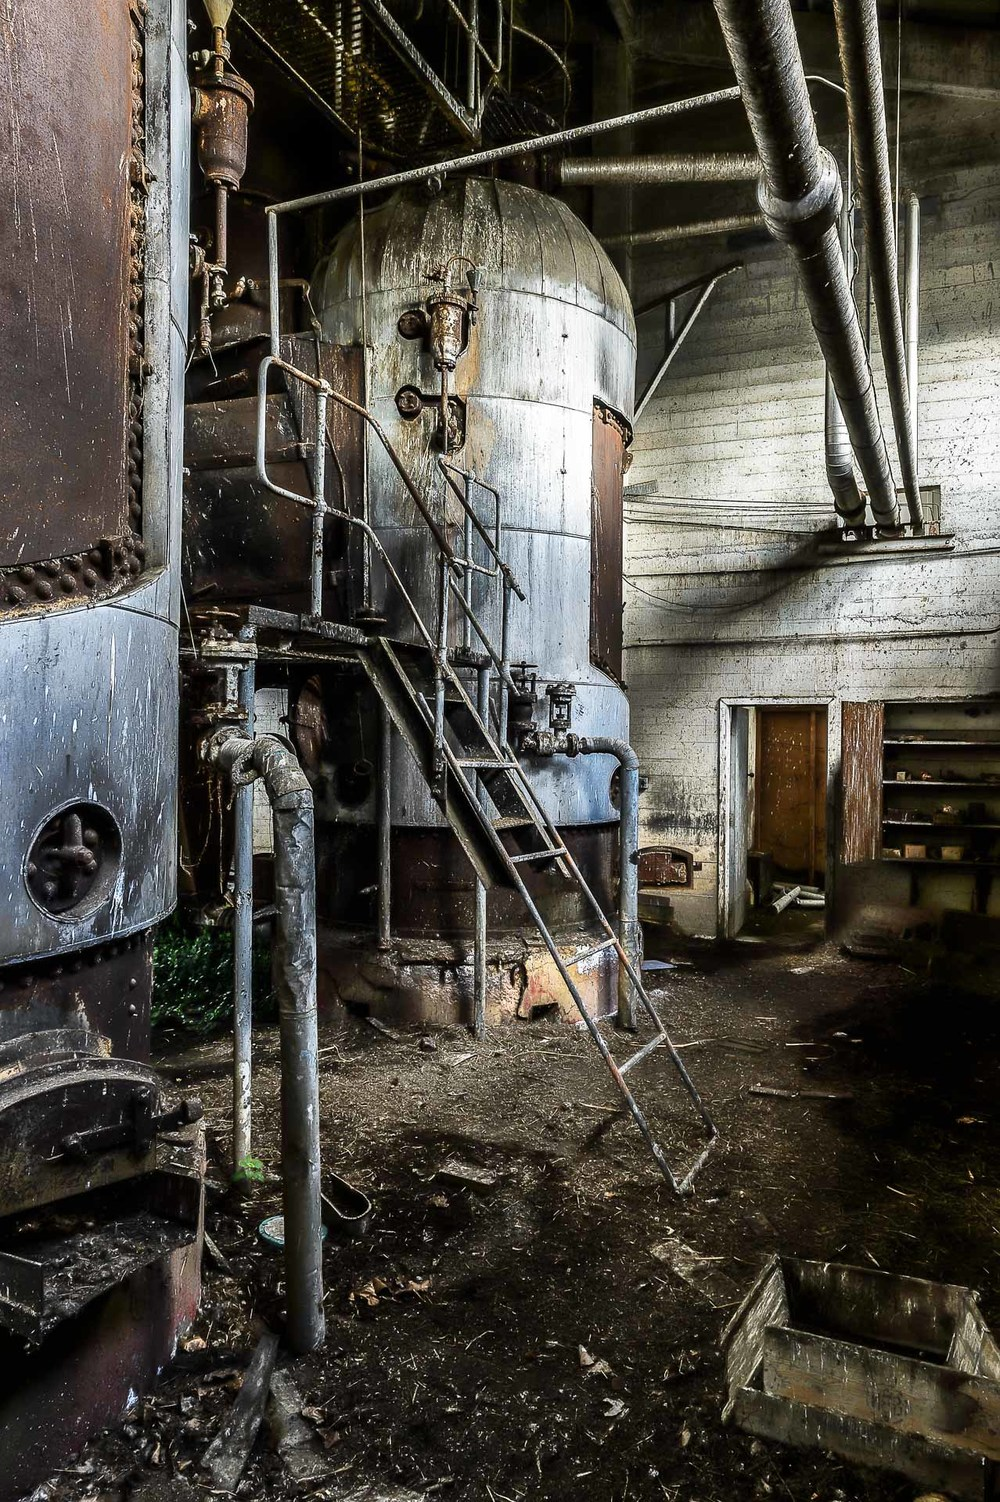 inside-the-boiler-house.jpg